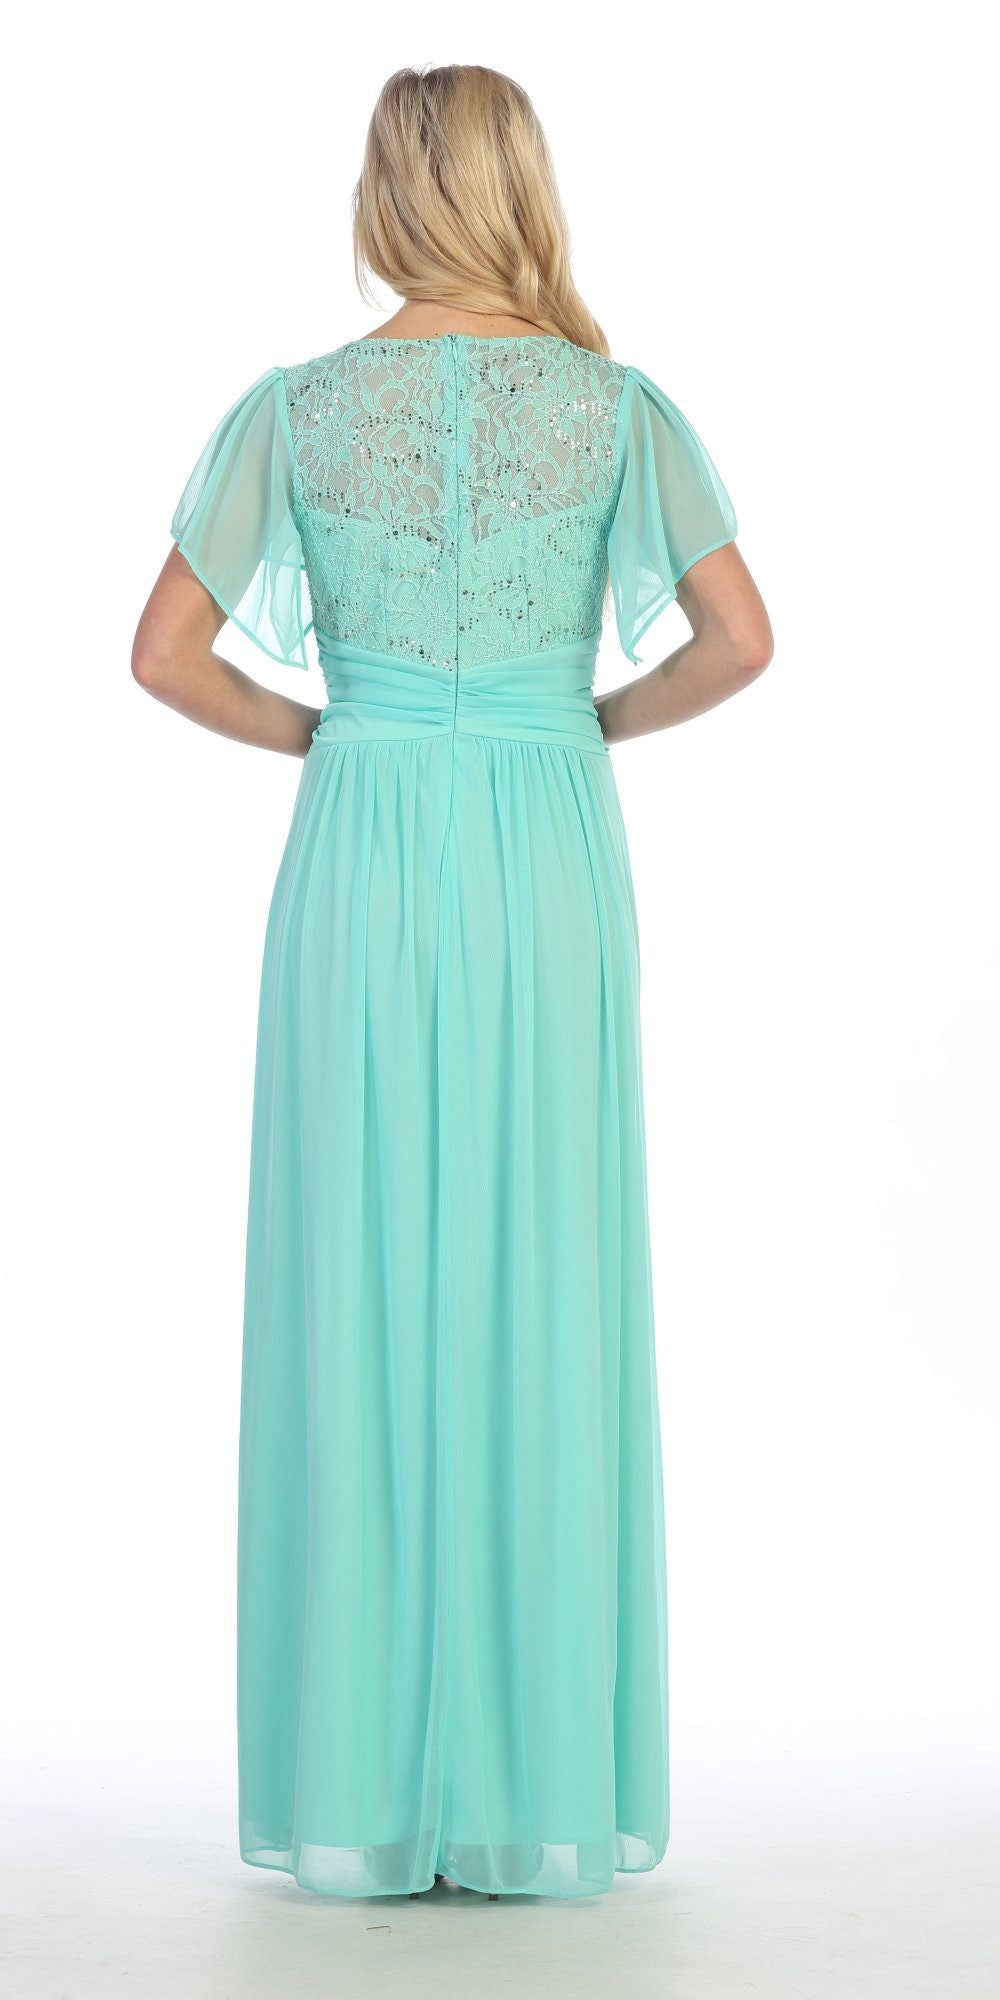 Long Chiffon Short Sleeve Semi Formal Dress Mint Lace Top Sequins Back View